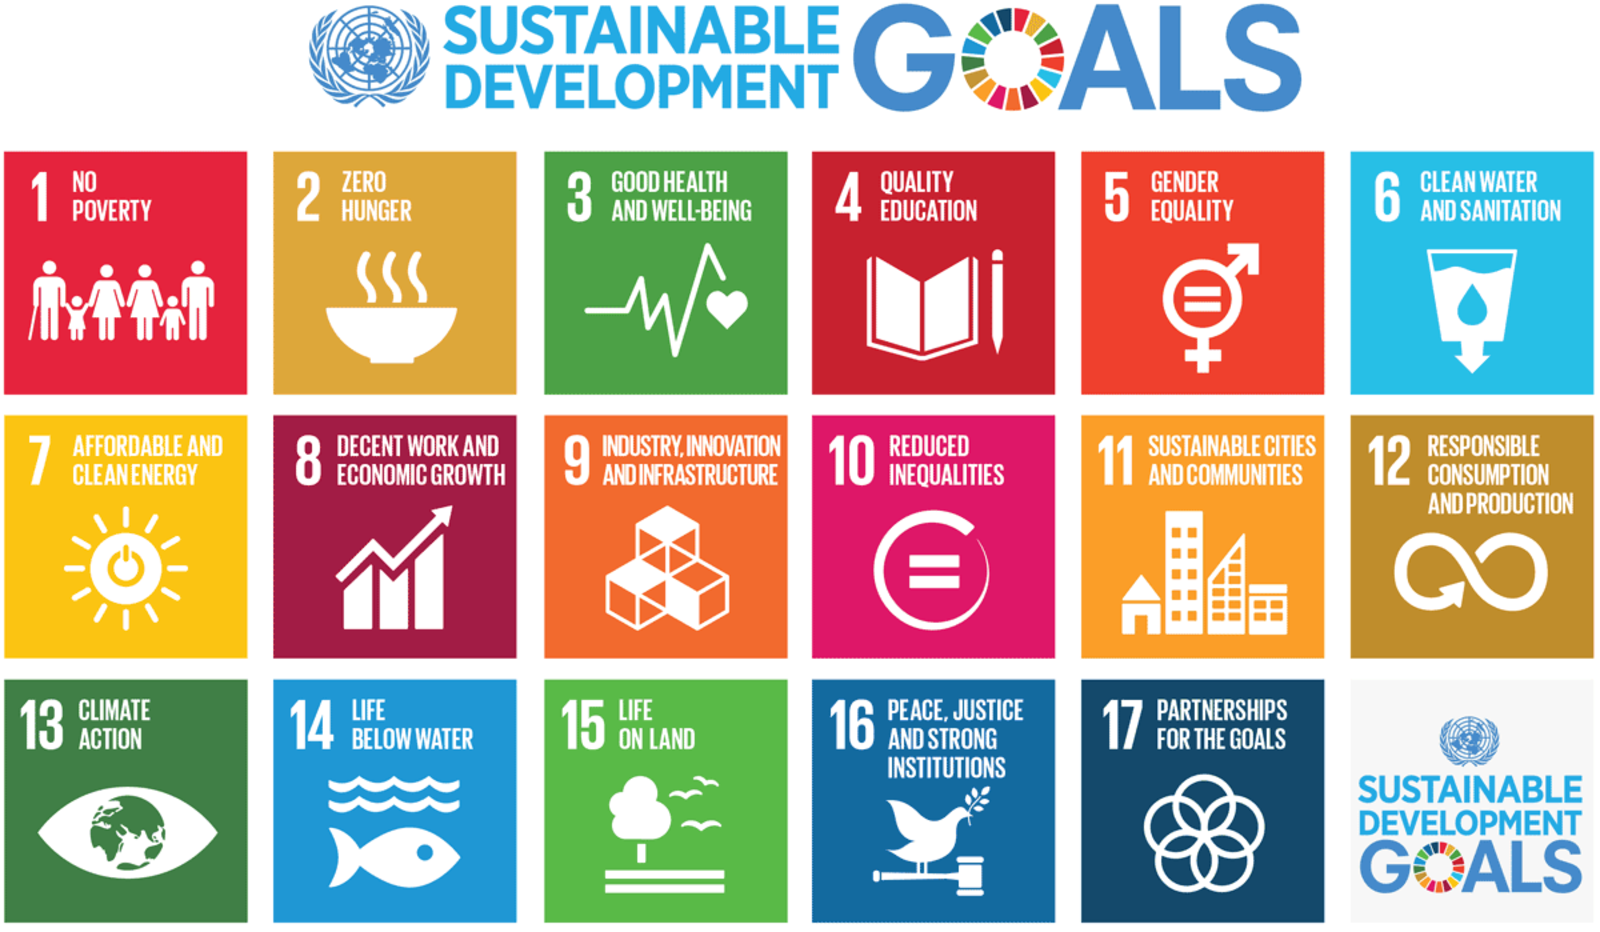 SDGs - Sustainable Development Goals